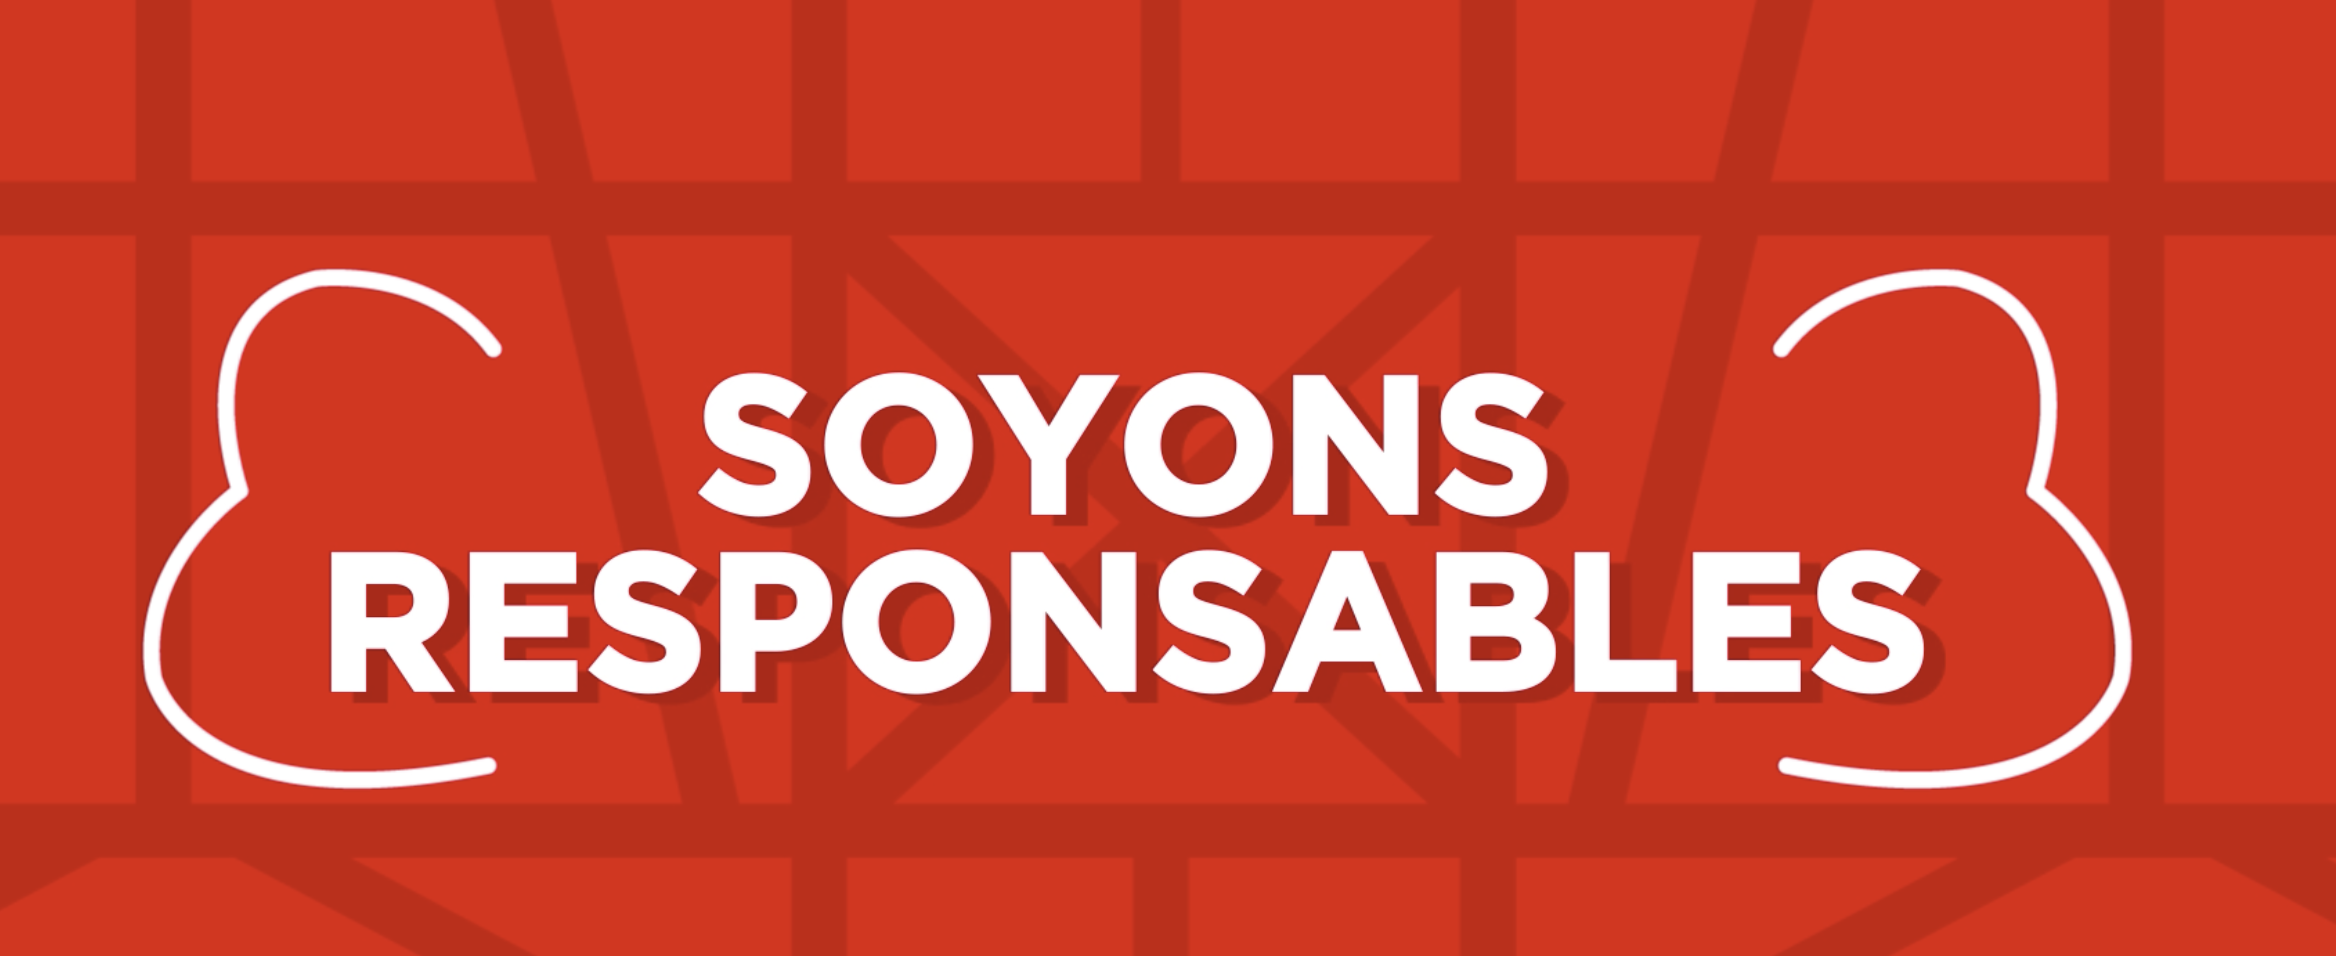 Soyons responsables